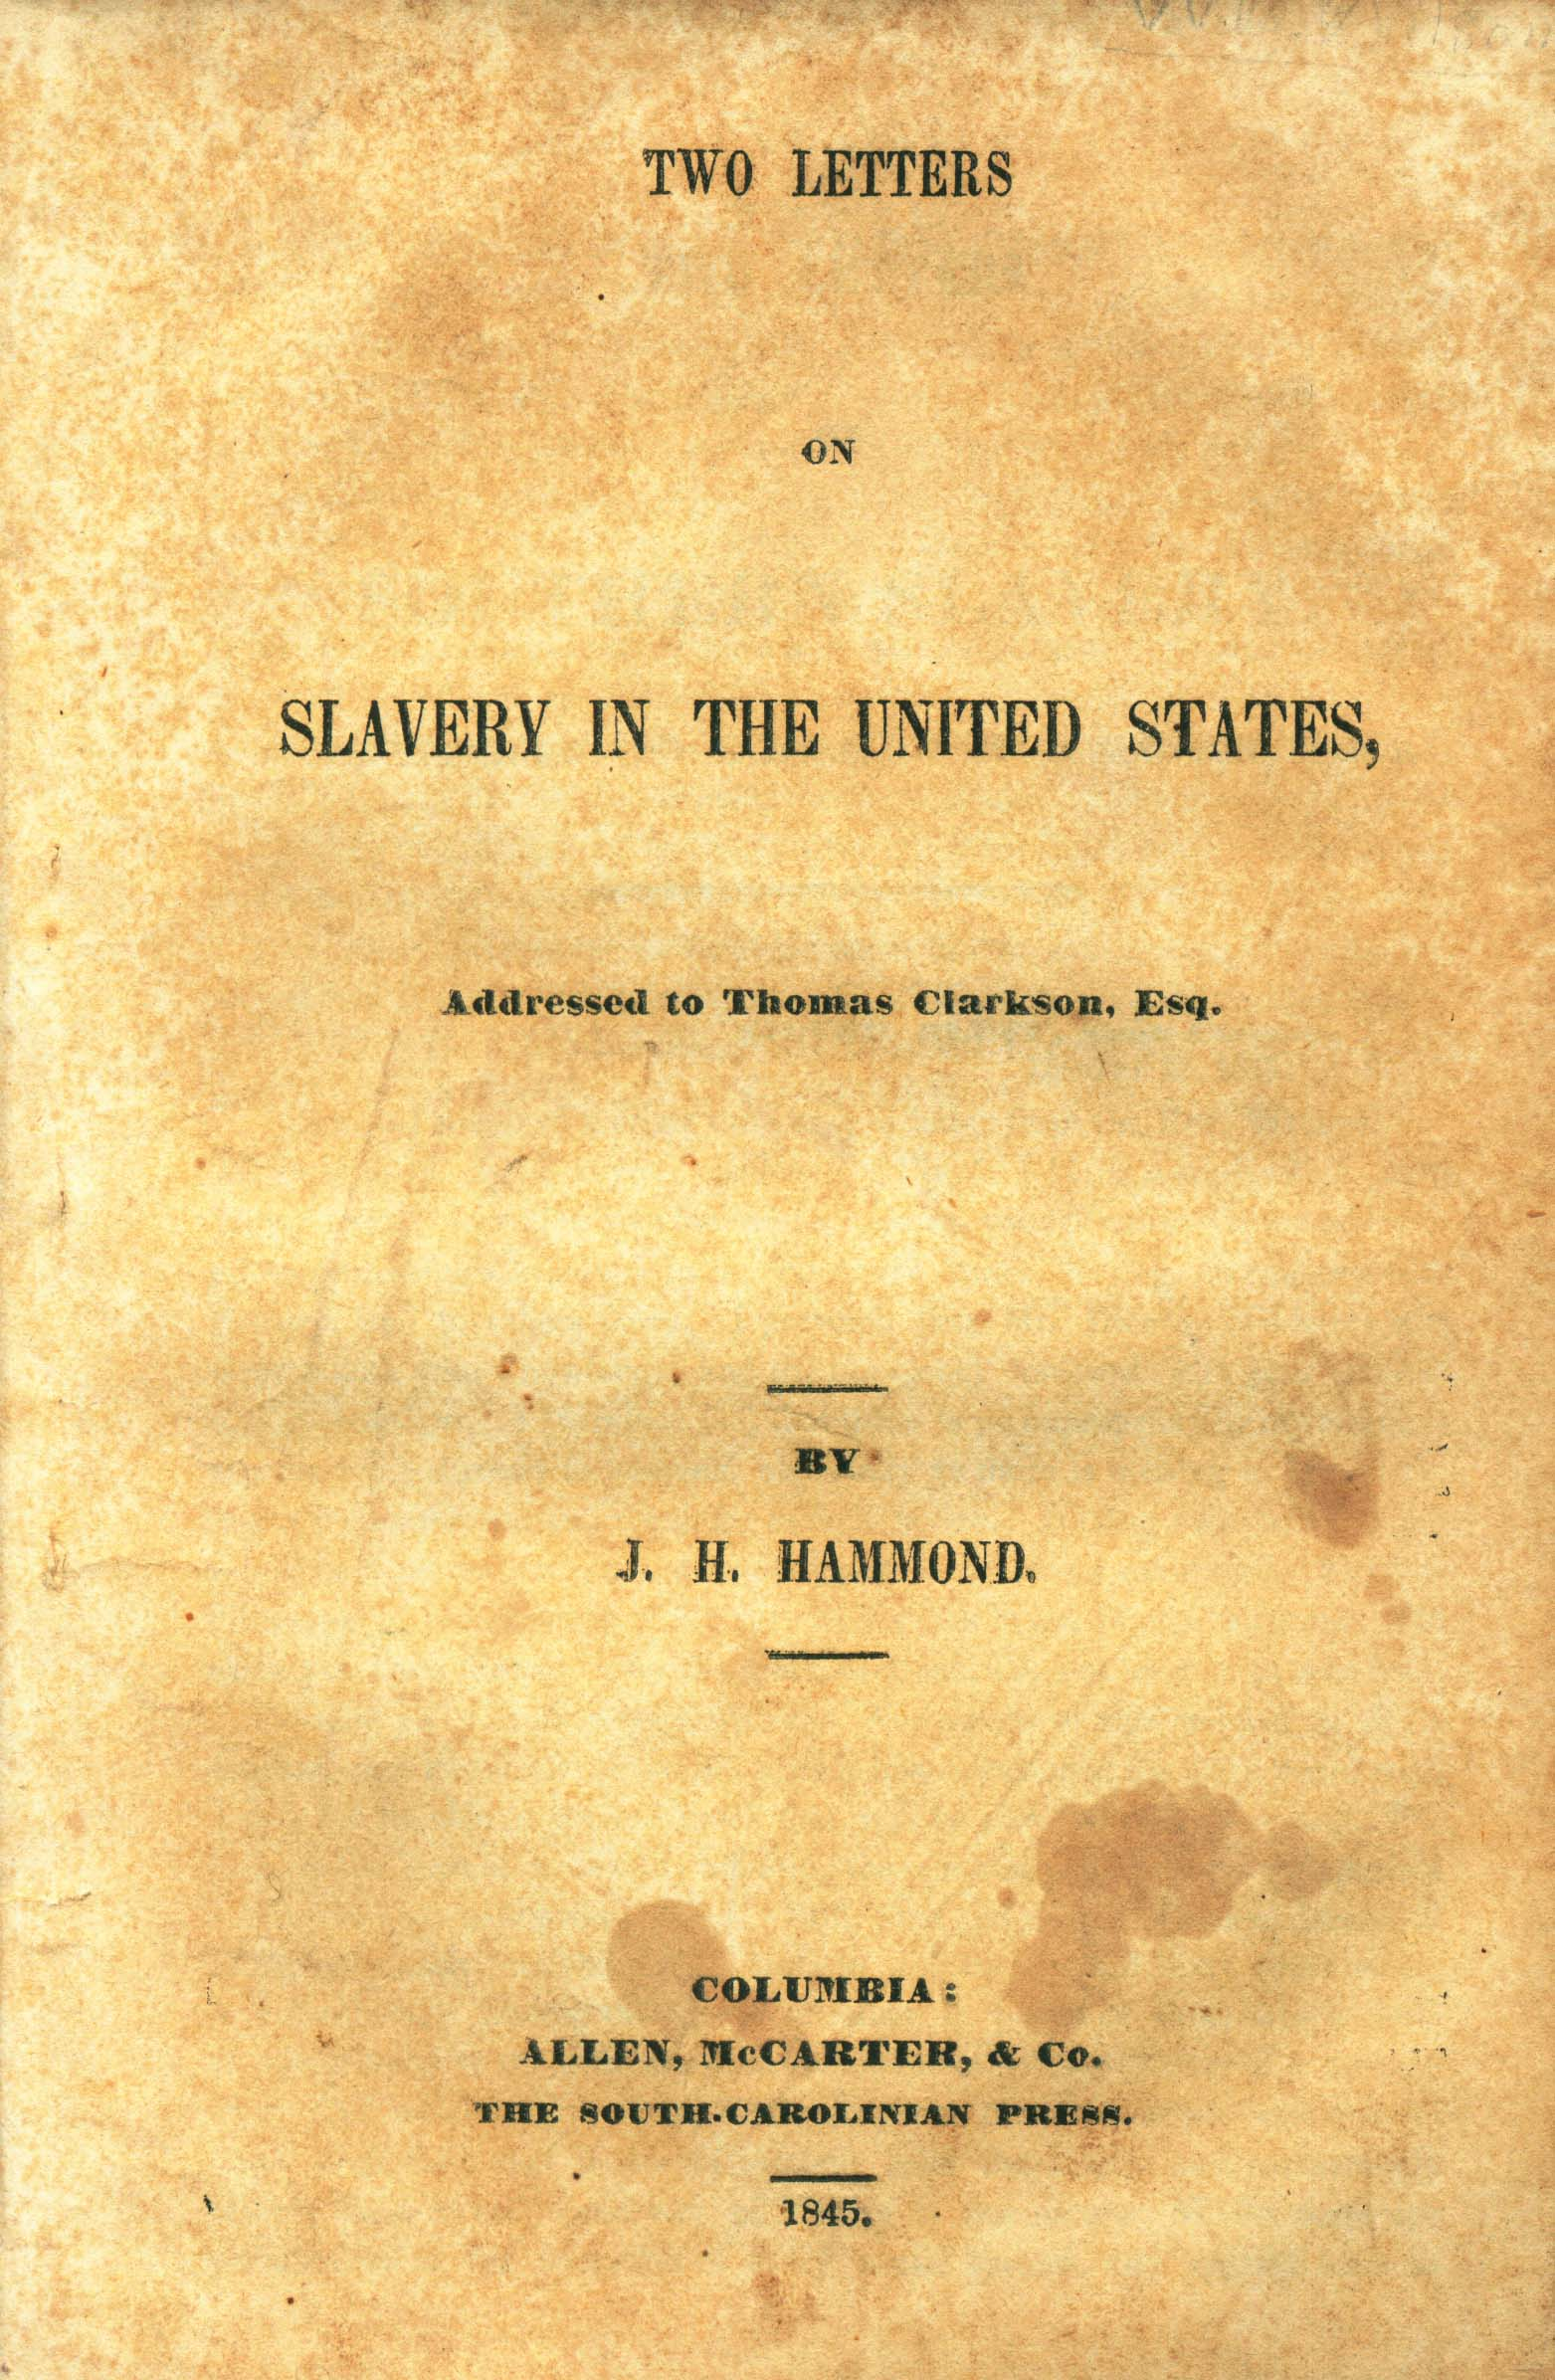 an introduction to the history of slavery in the united states